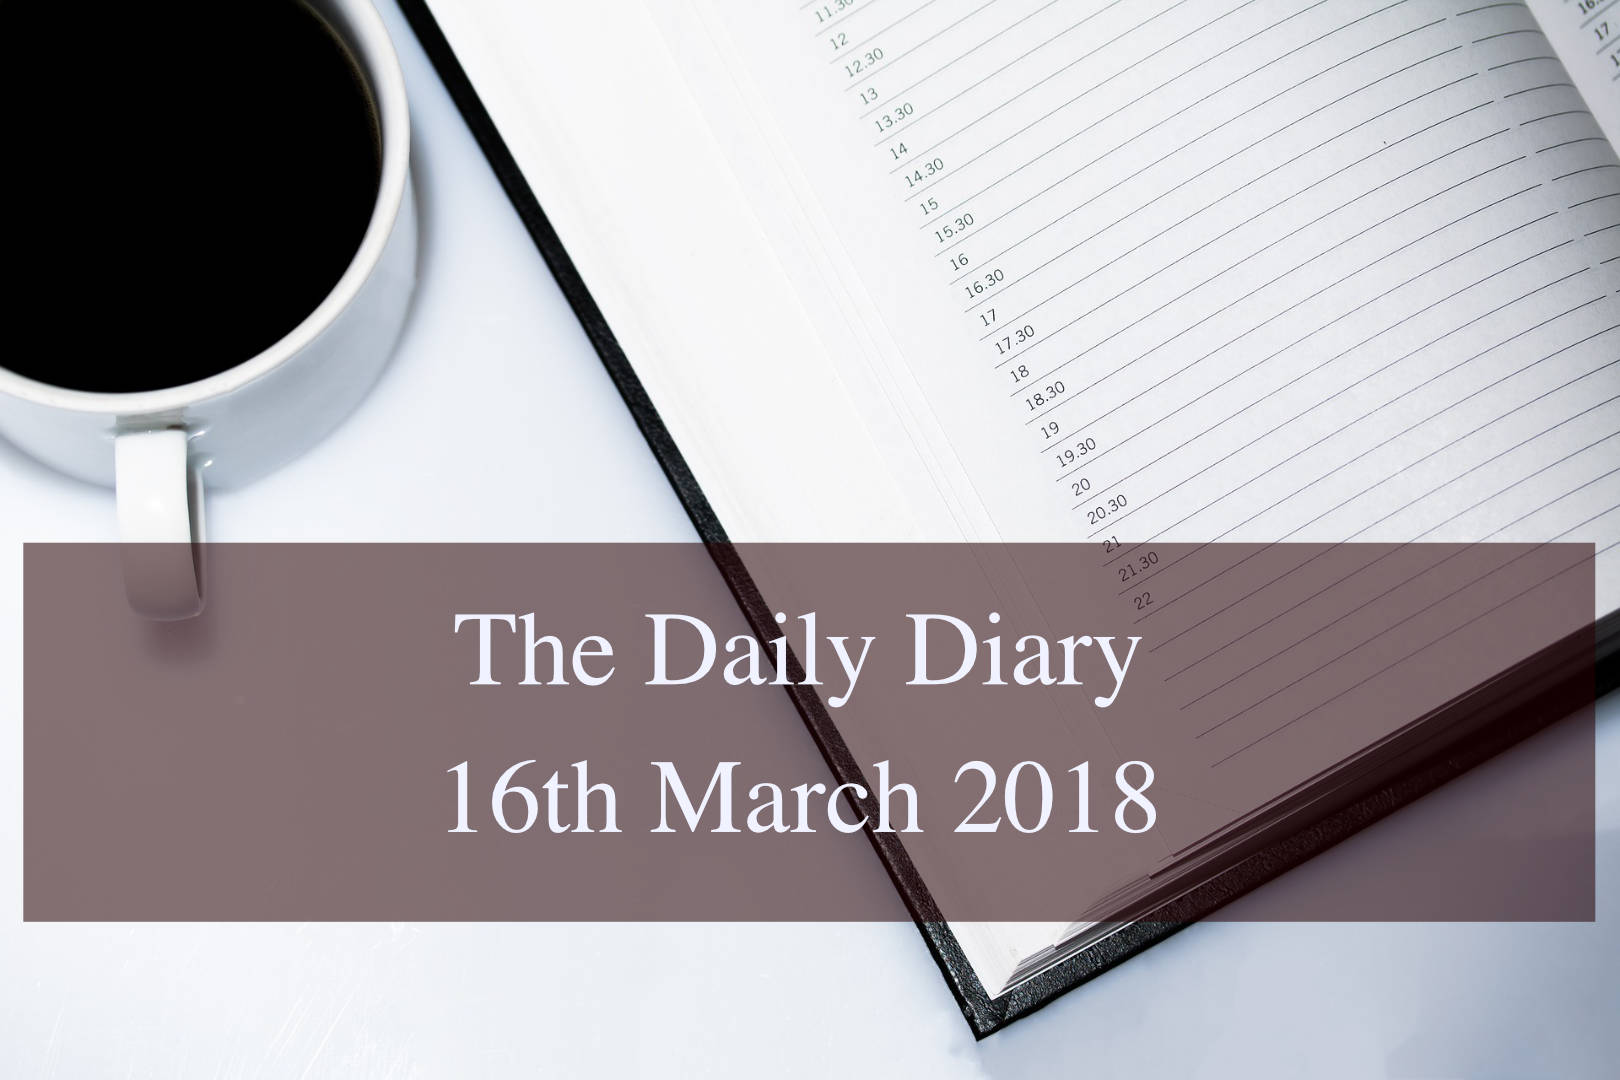 Daily Diary – 16th March 2018